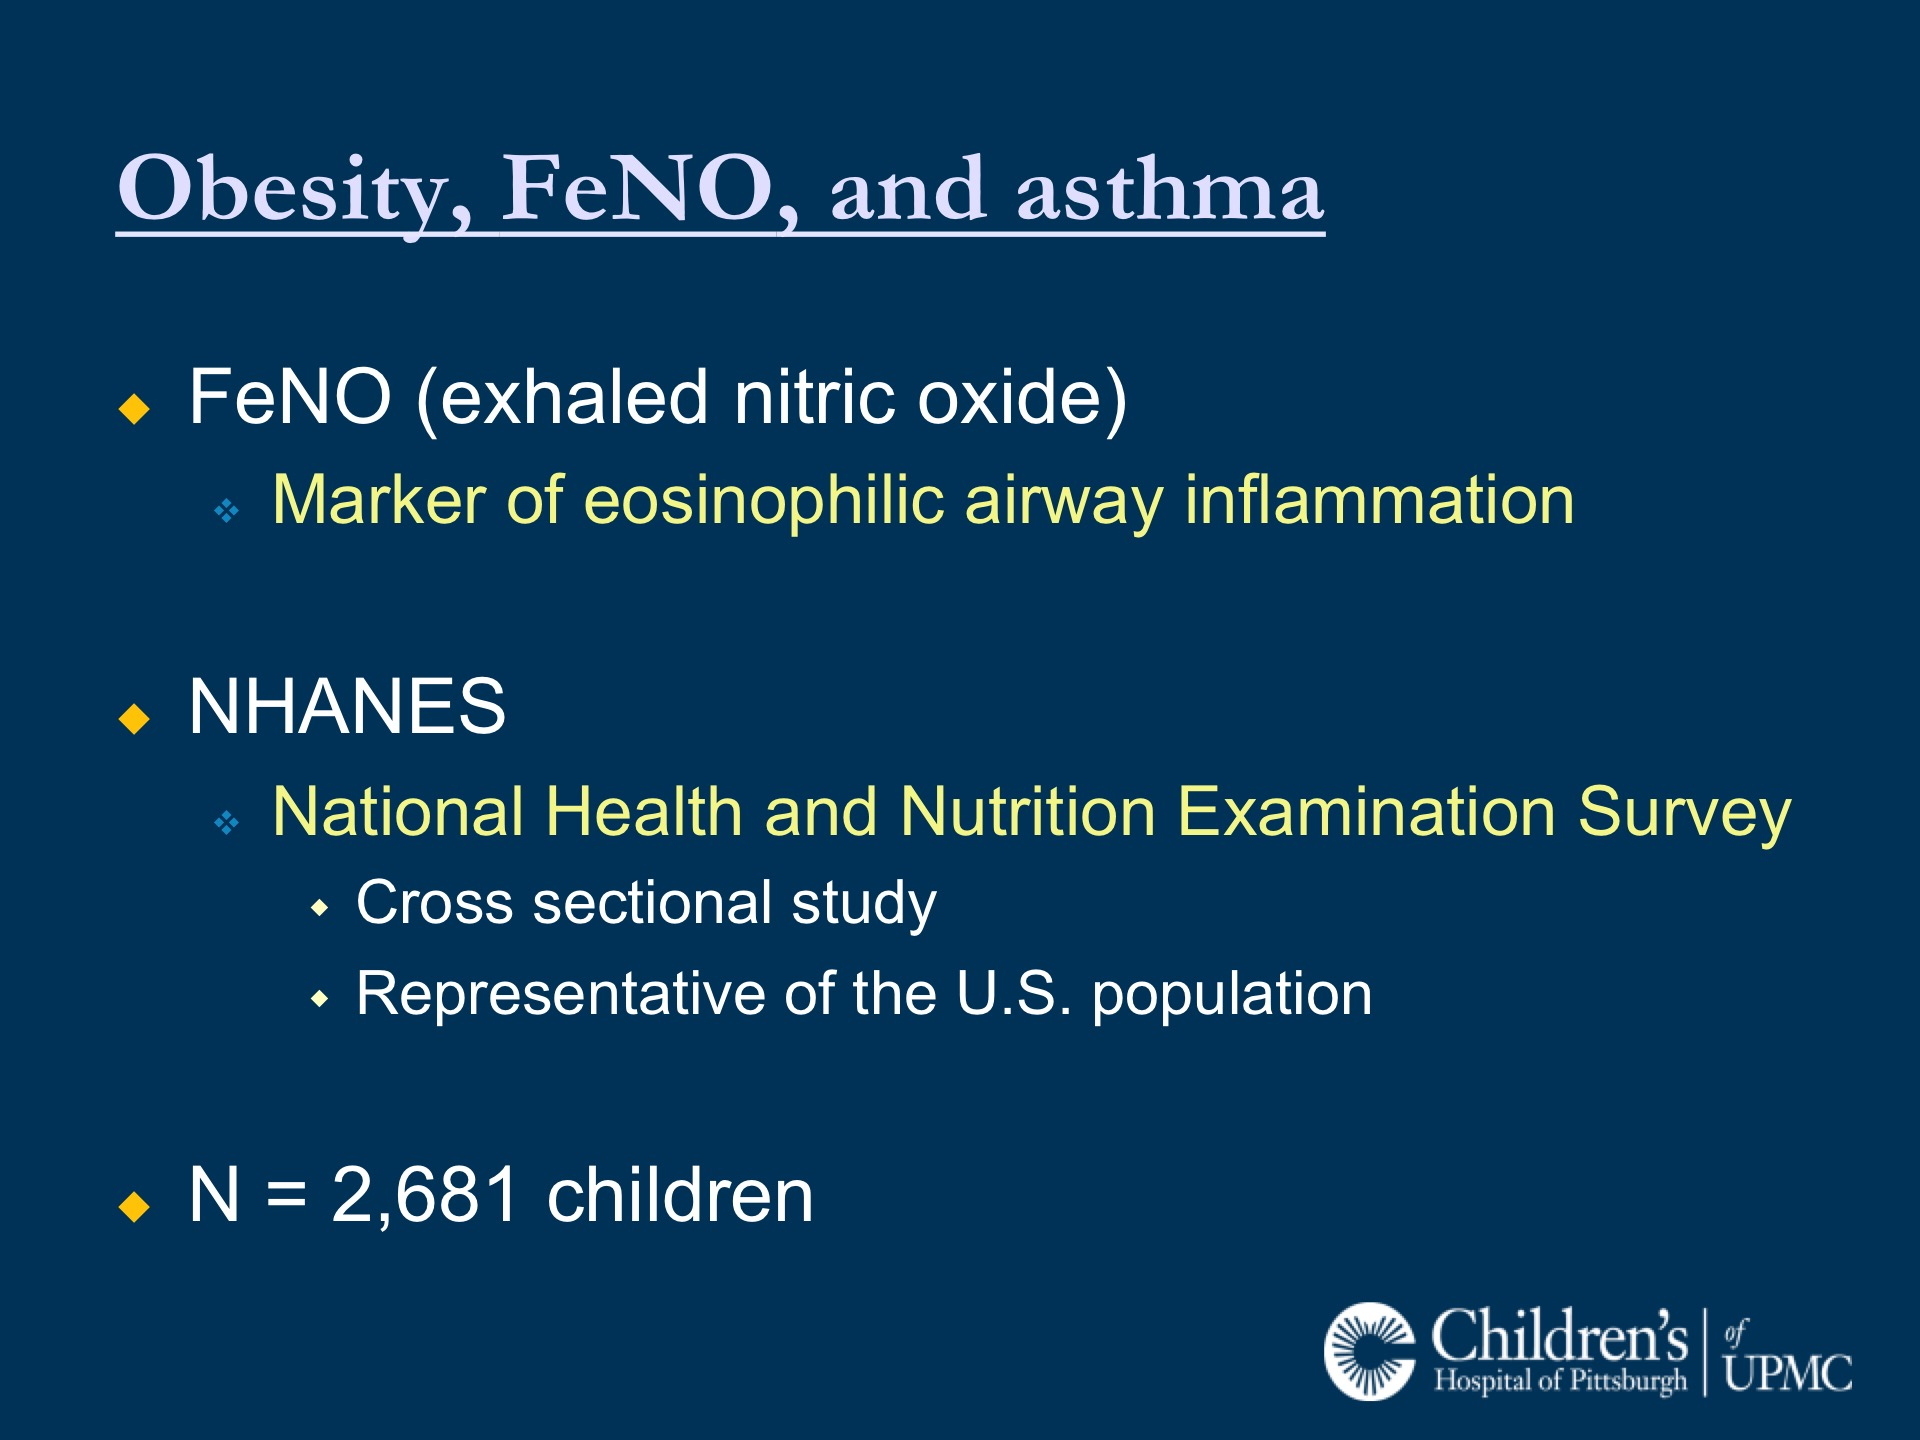 Childhood Obesity and Asthma: A Complicated Relationship | UPMC